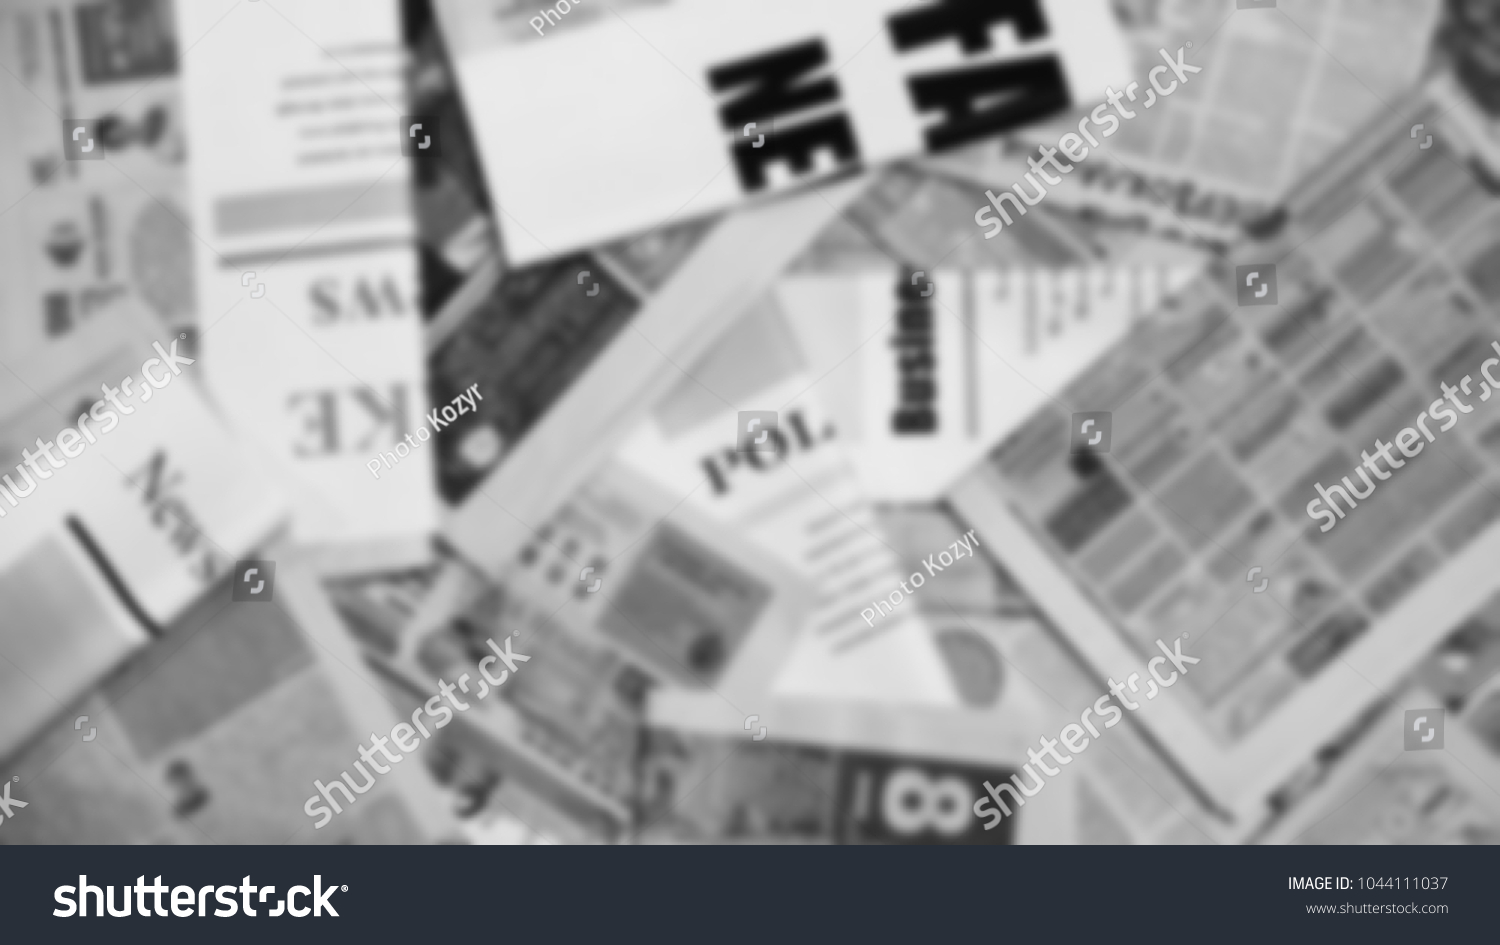 old newspapers scattered on horizontal surface stock photo (edit now